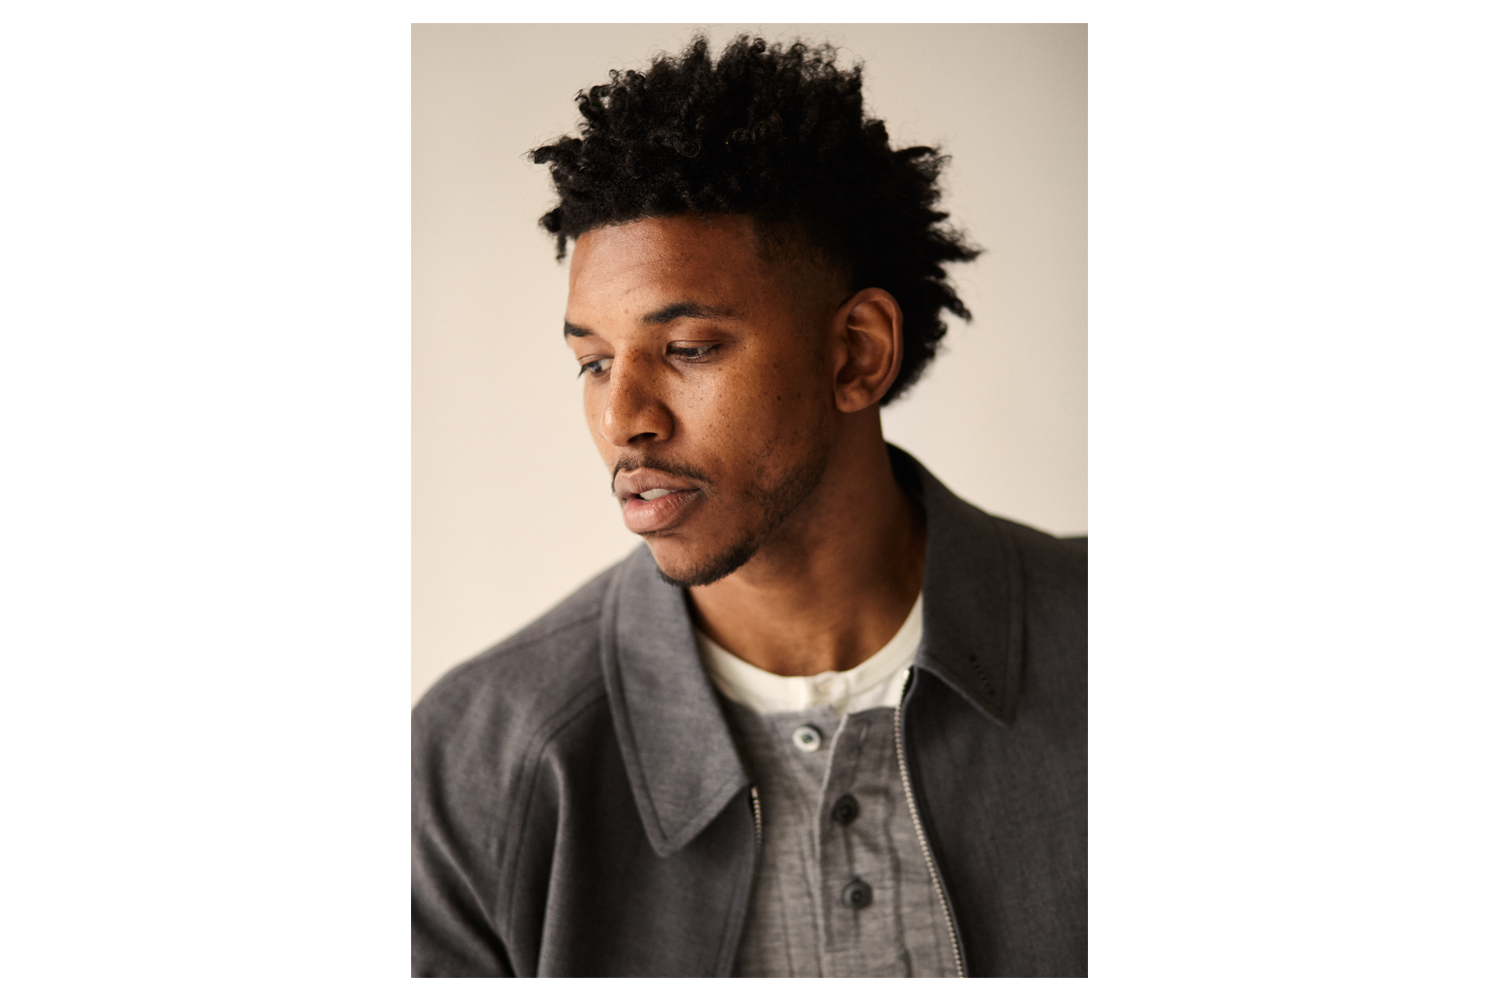 Los Angeles Laker Nick Young (Swaggy P), photographed for GQ in LA.  Brad Torchia is an LA-based editorial and commercial photographer.